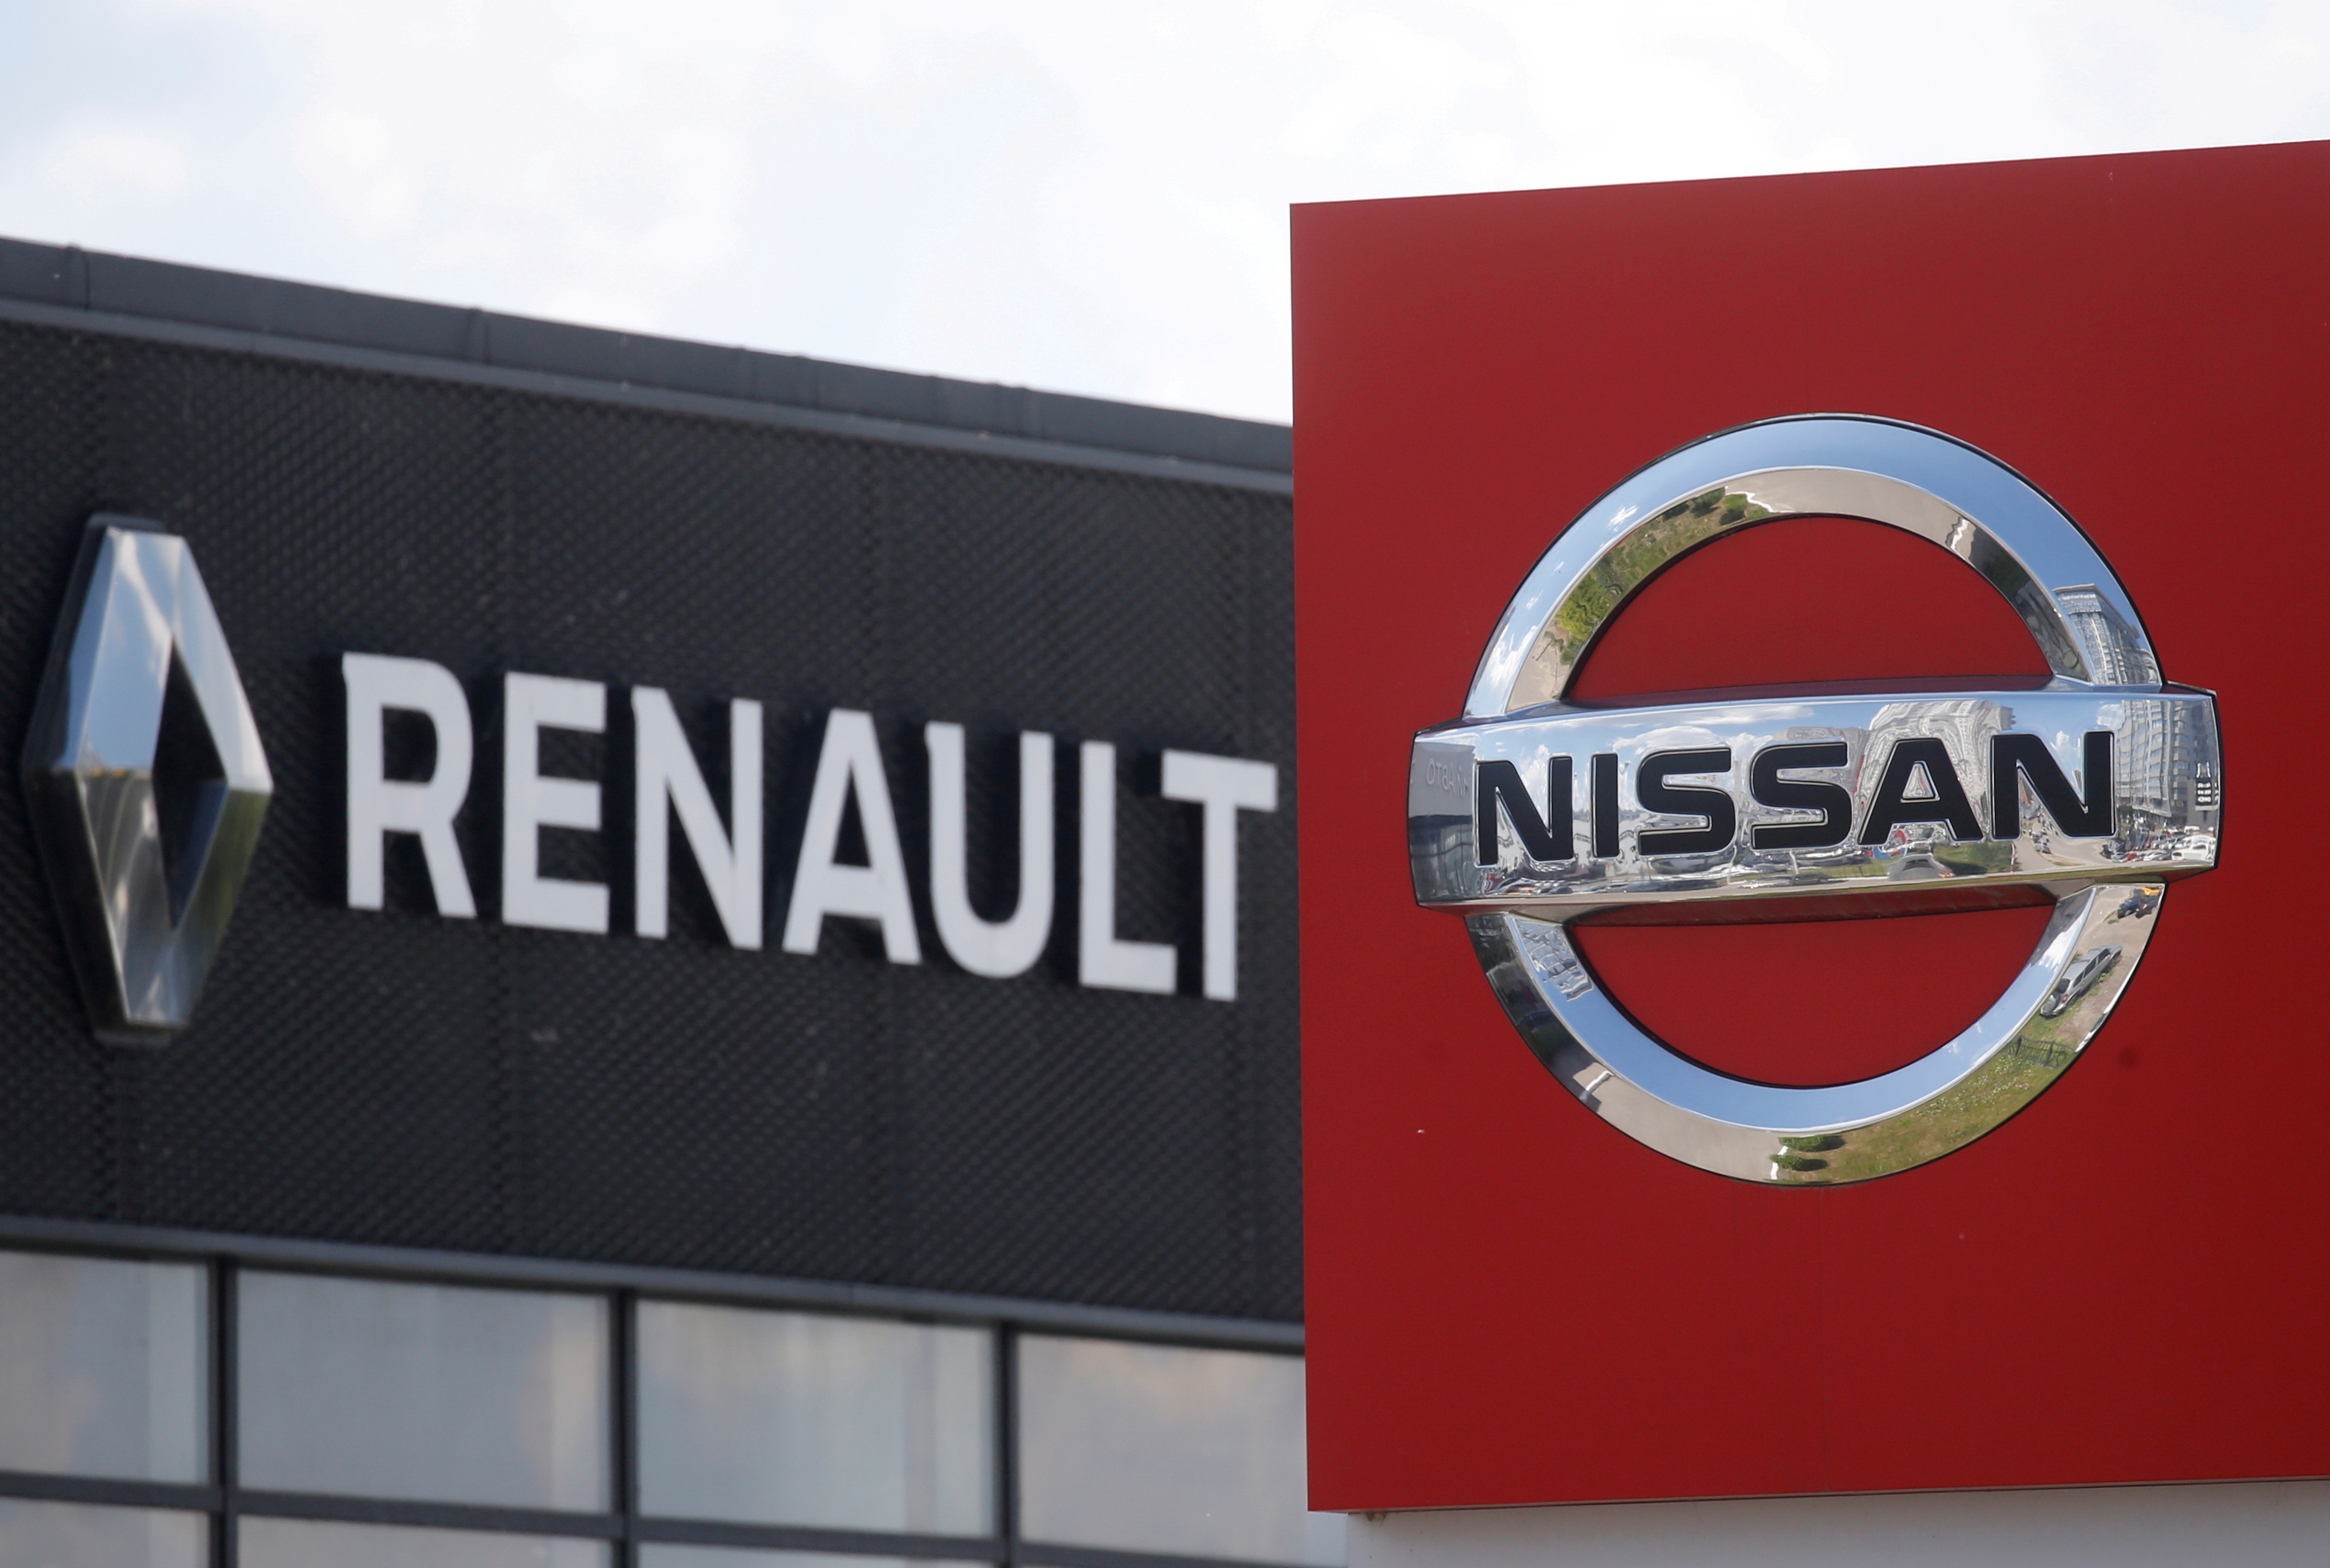 The logos of car manufacturers Nissan and Renault are pictured at a dealership Kyiv, Ukraine June 25, 2020. REUTERS/Valentyn Ogirenko